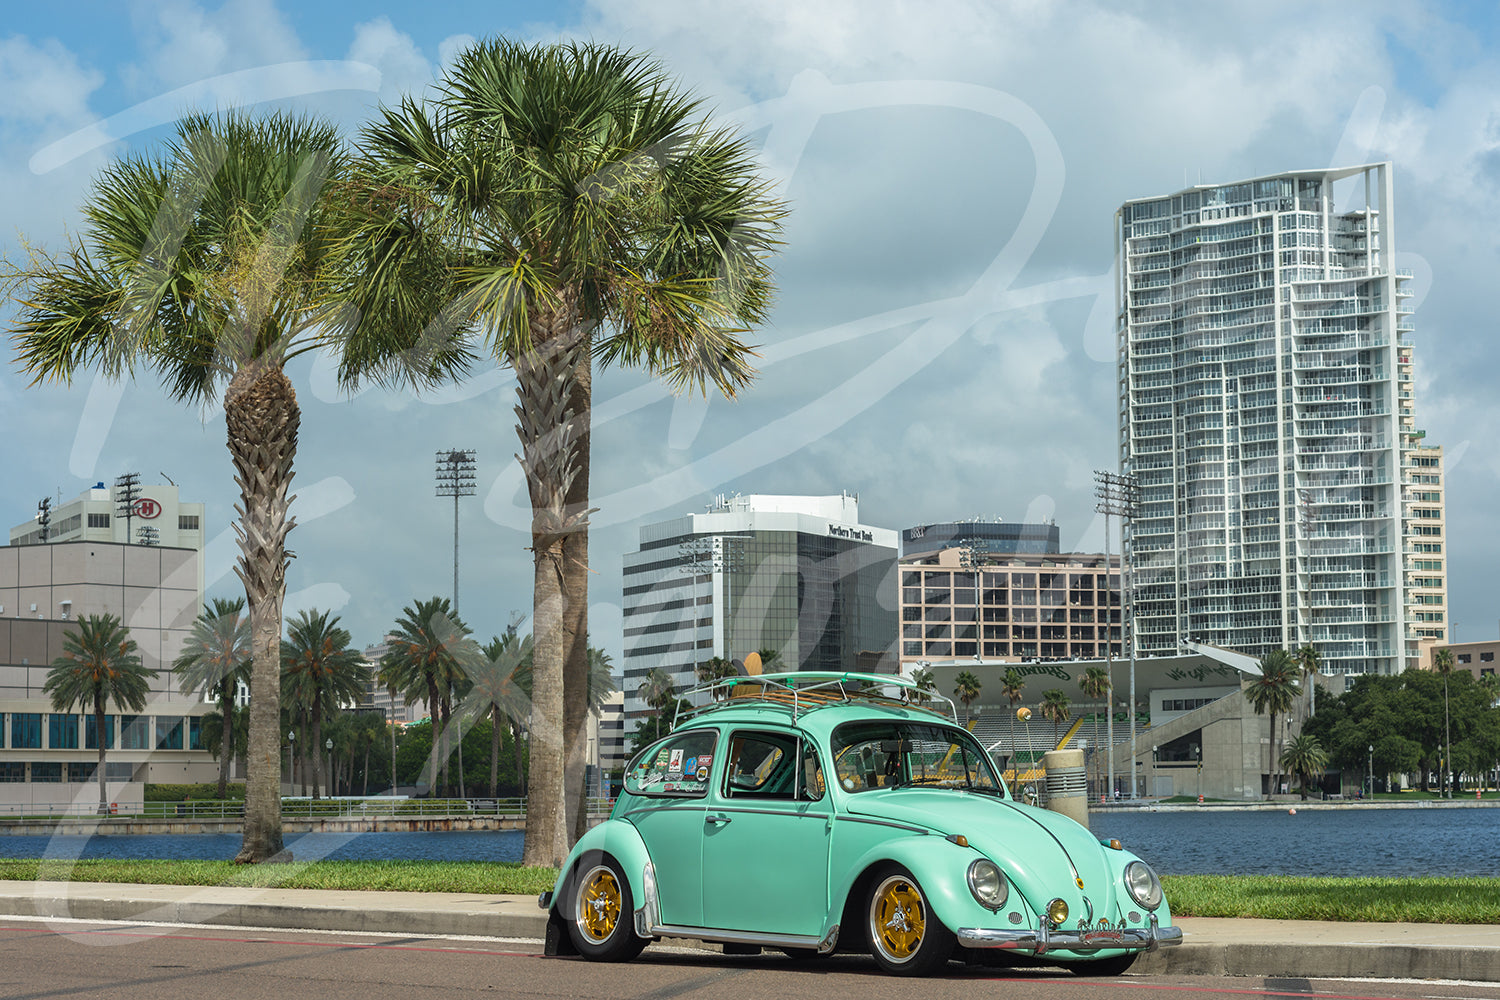 Fresh Mint Volkswagen beetle St Pete Florida - Original Print